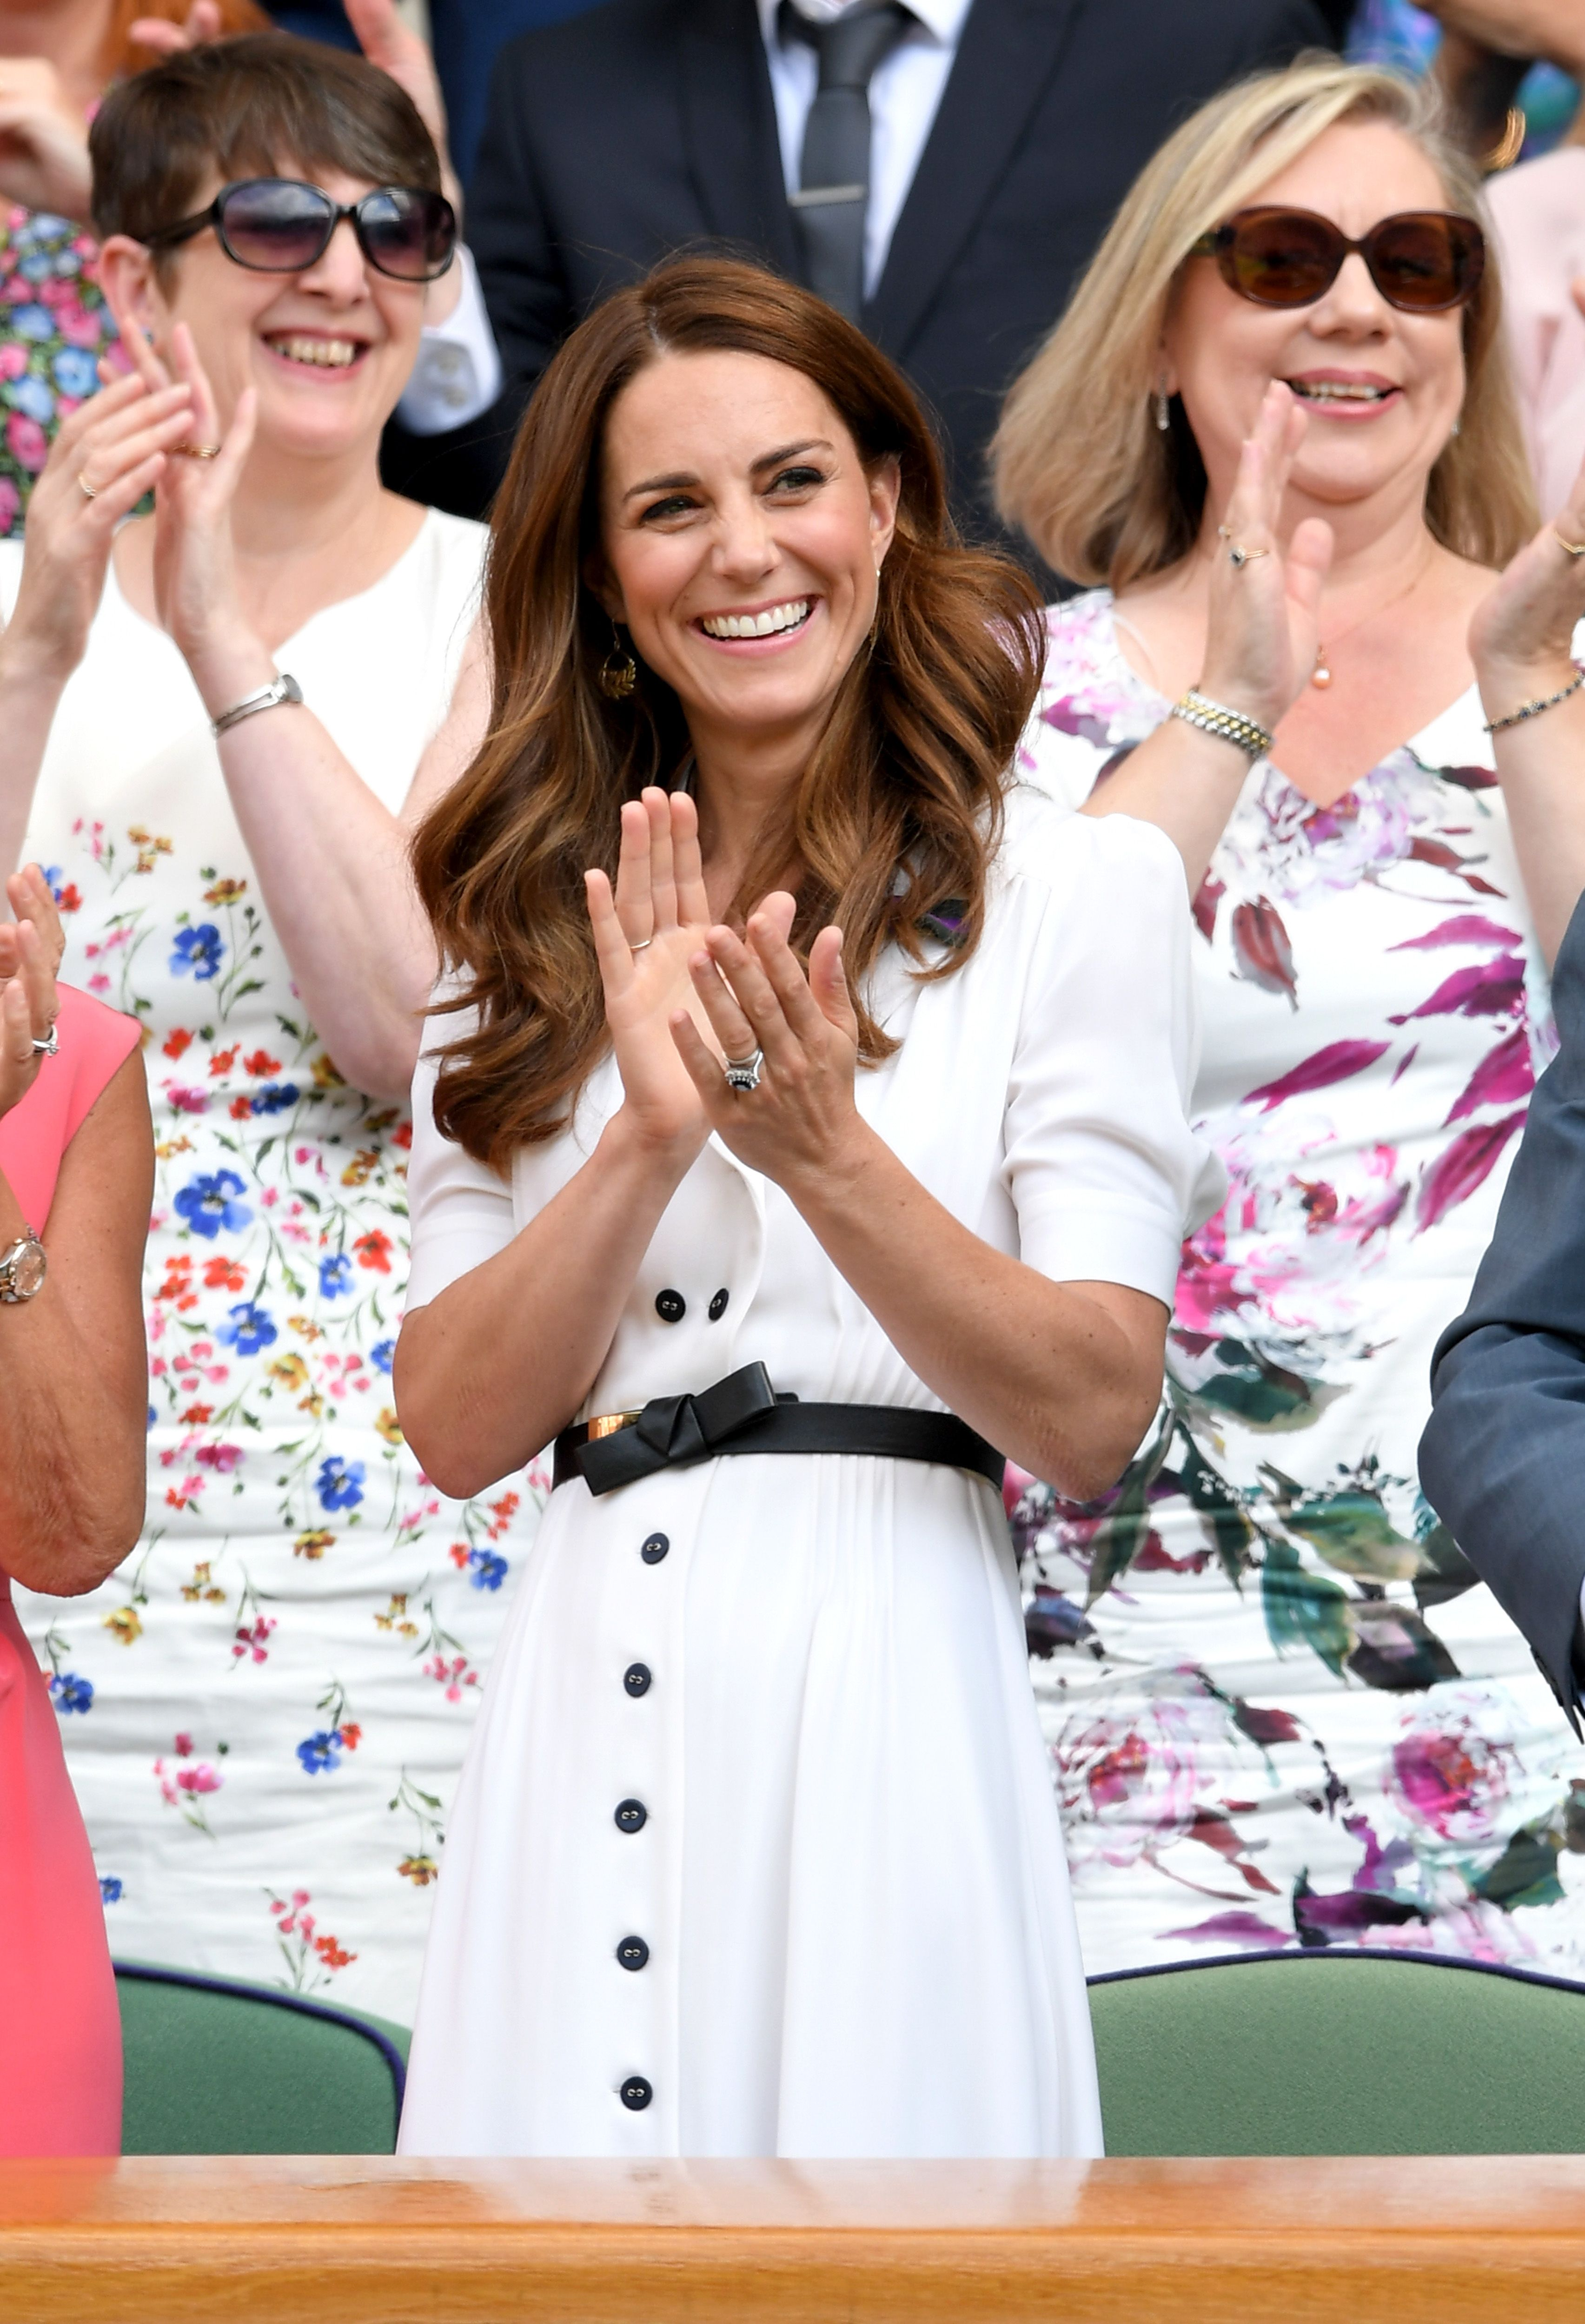 You can now buy Kate Middleton's white Wimbledon dress online